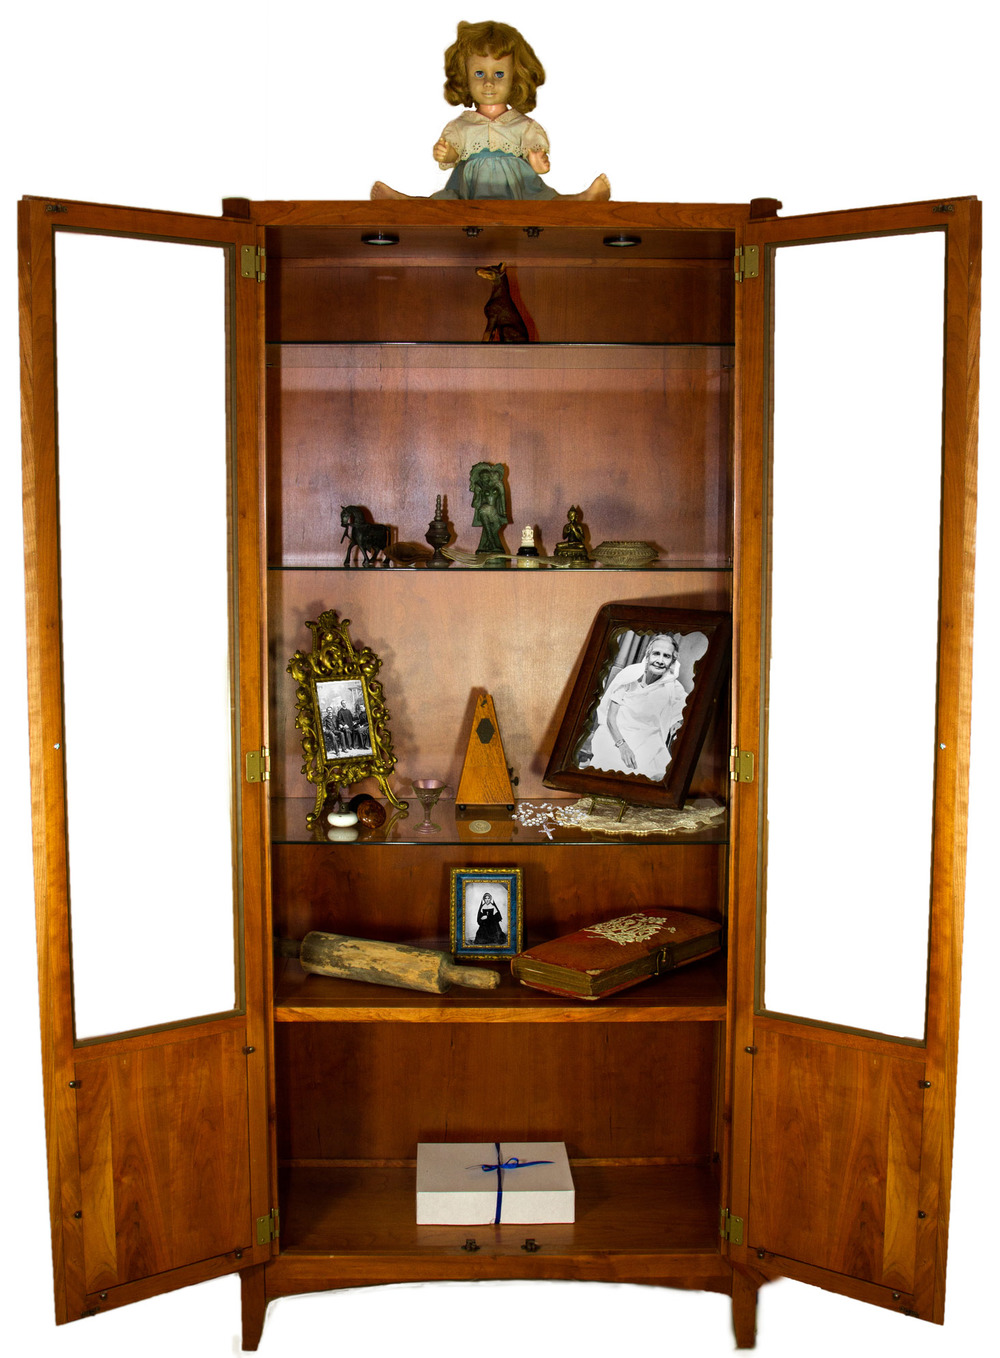 She Walked To The Natural Cherry Wood China Cabinet In The Corner Of Her  Casita, Reached Up To Switch On The Cabinet Lighting, And Stood Looking  Through The ...